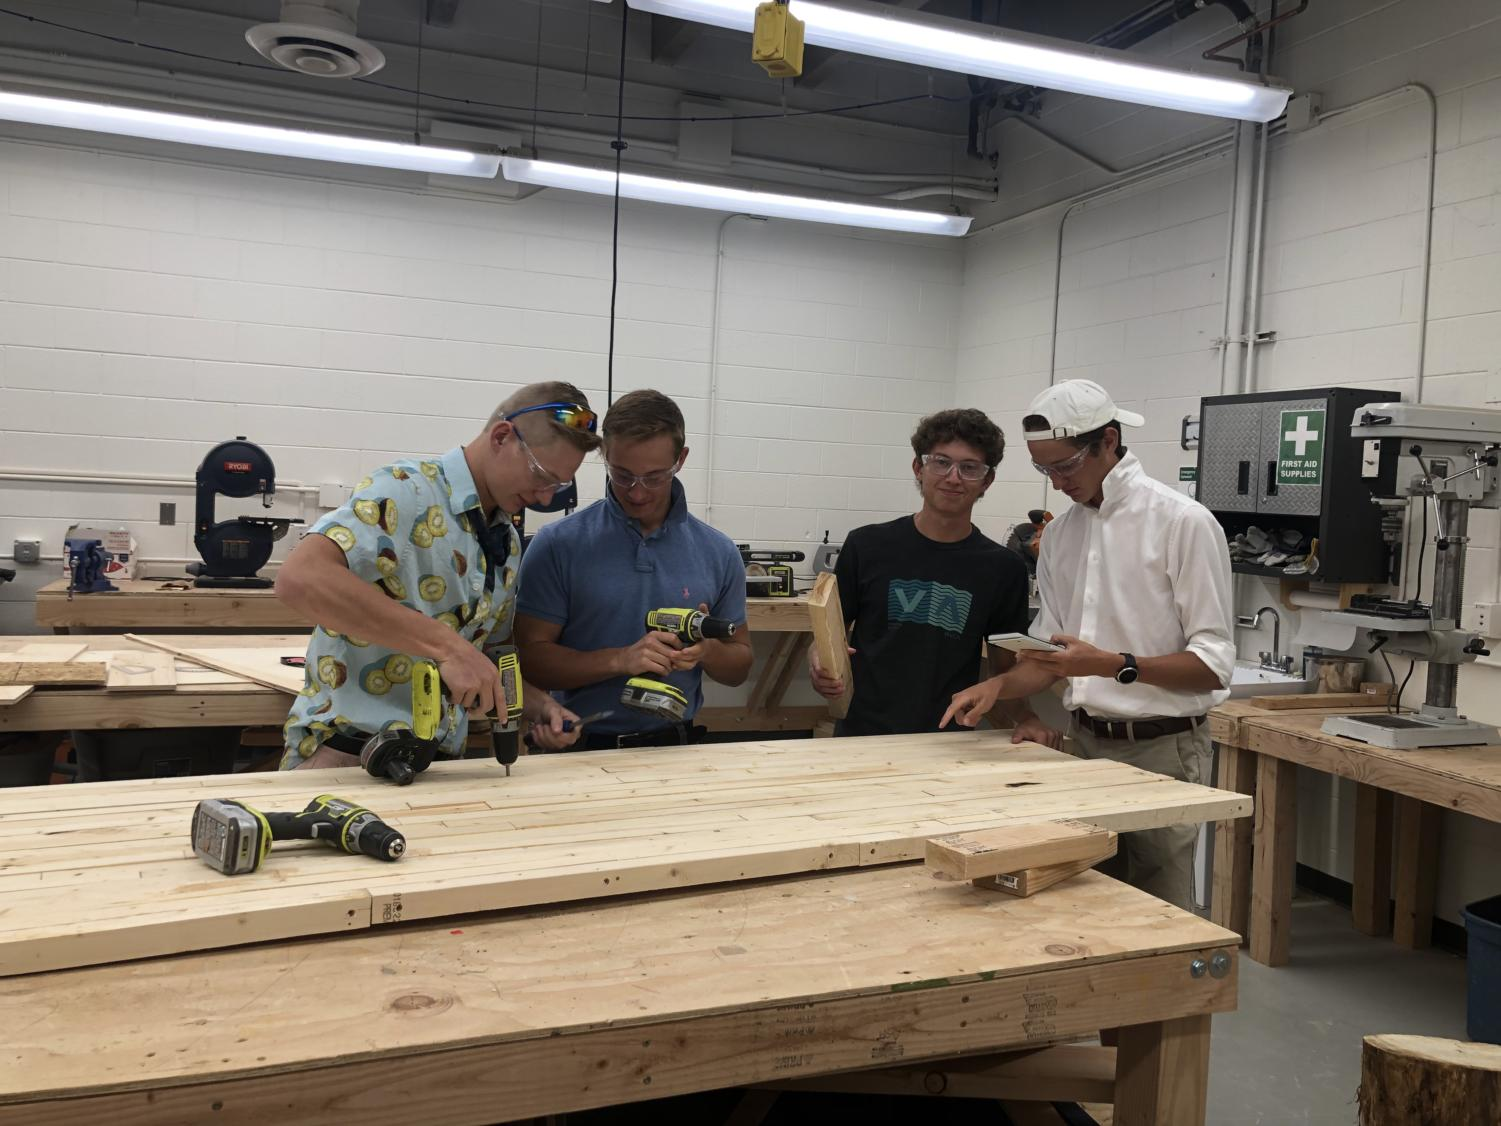 Tyler L'Hotta, Ryan O'Connor, Toby Ubben, Justin Banta working in second period engineering class.